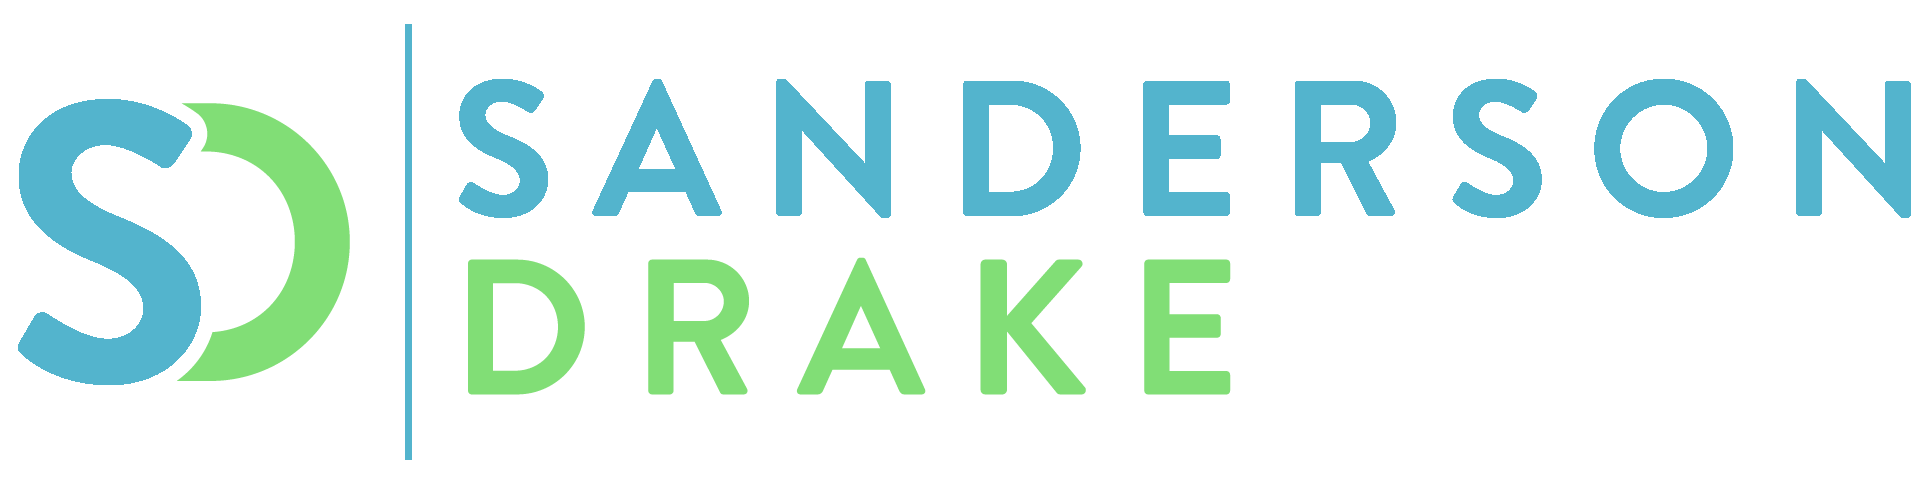 Sanderson Drake Limited T/A Payday Loan Claims